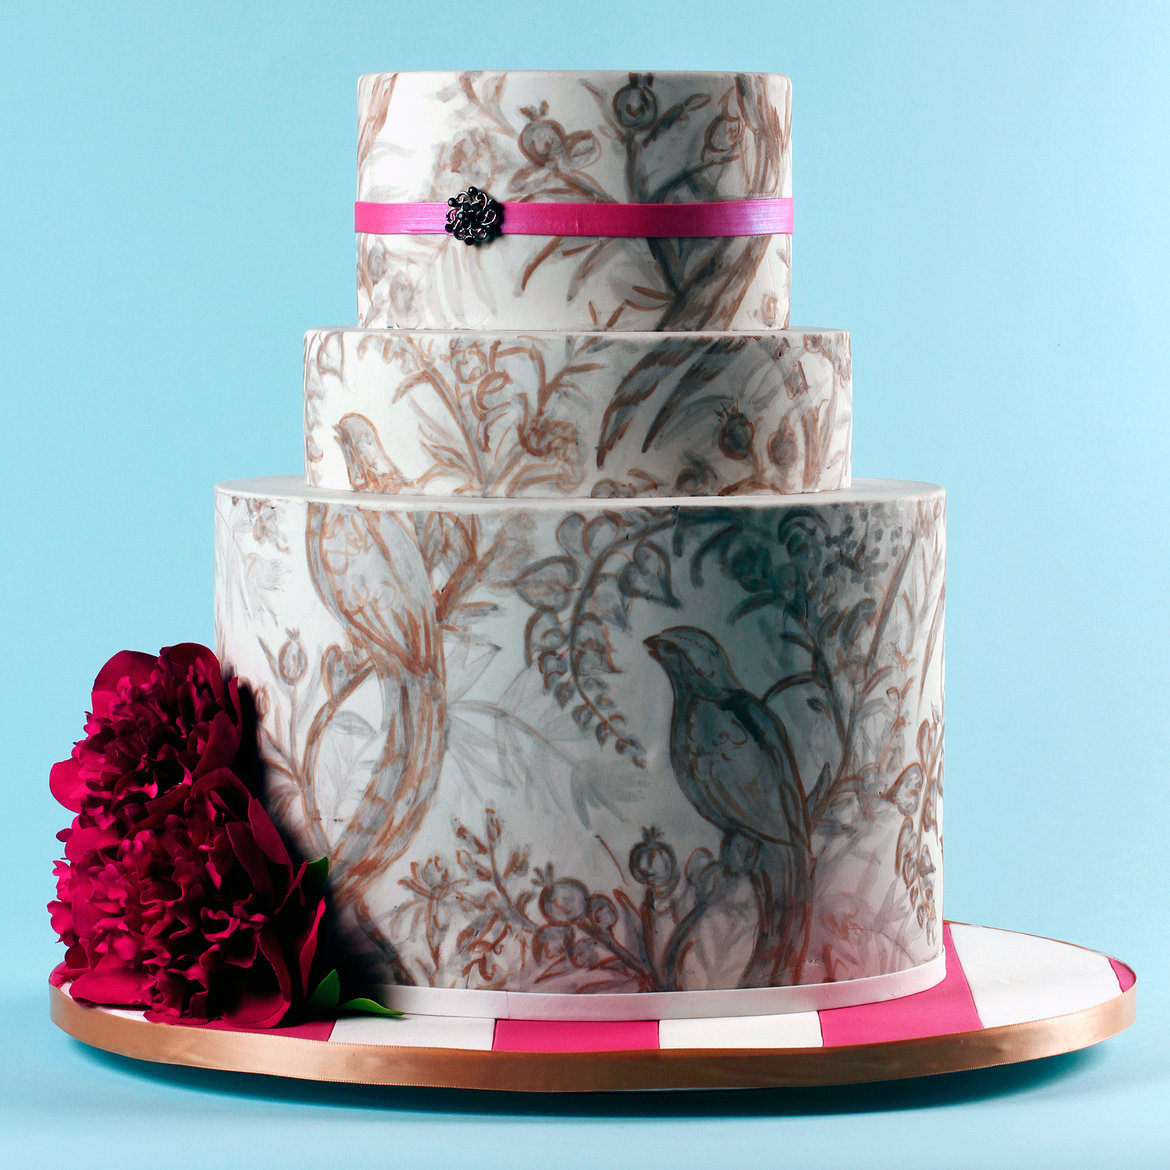 How To Get A Beautiful Wedding Cake Without Spending Fortune